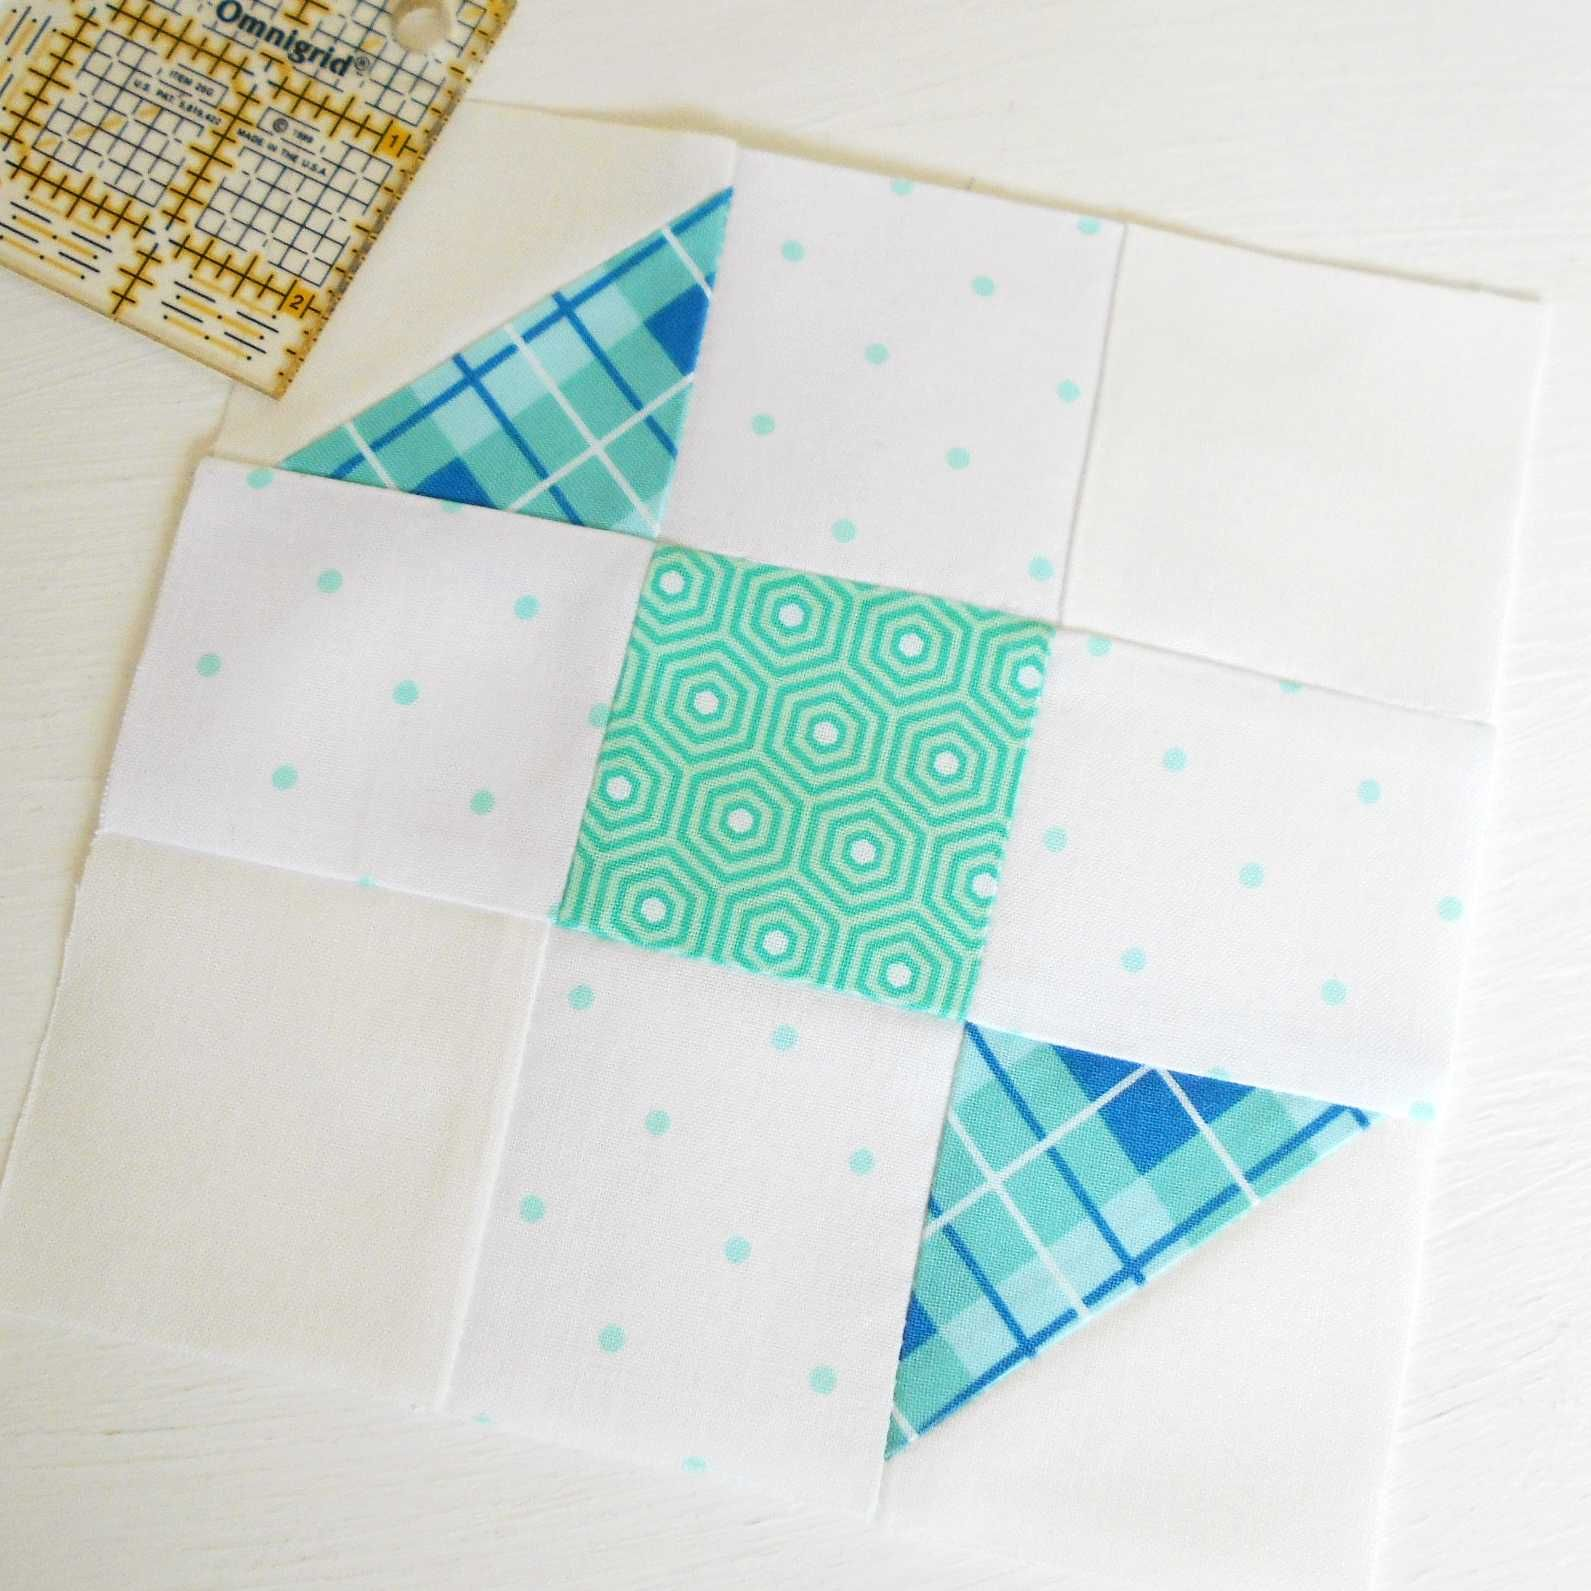 The Splendid Sampler block no. 21 - Sweet Candy.  Another really easy patchwork block.